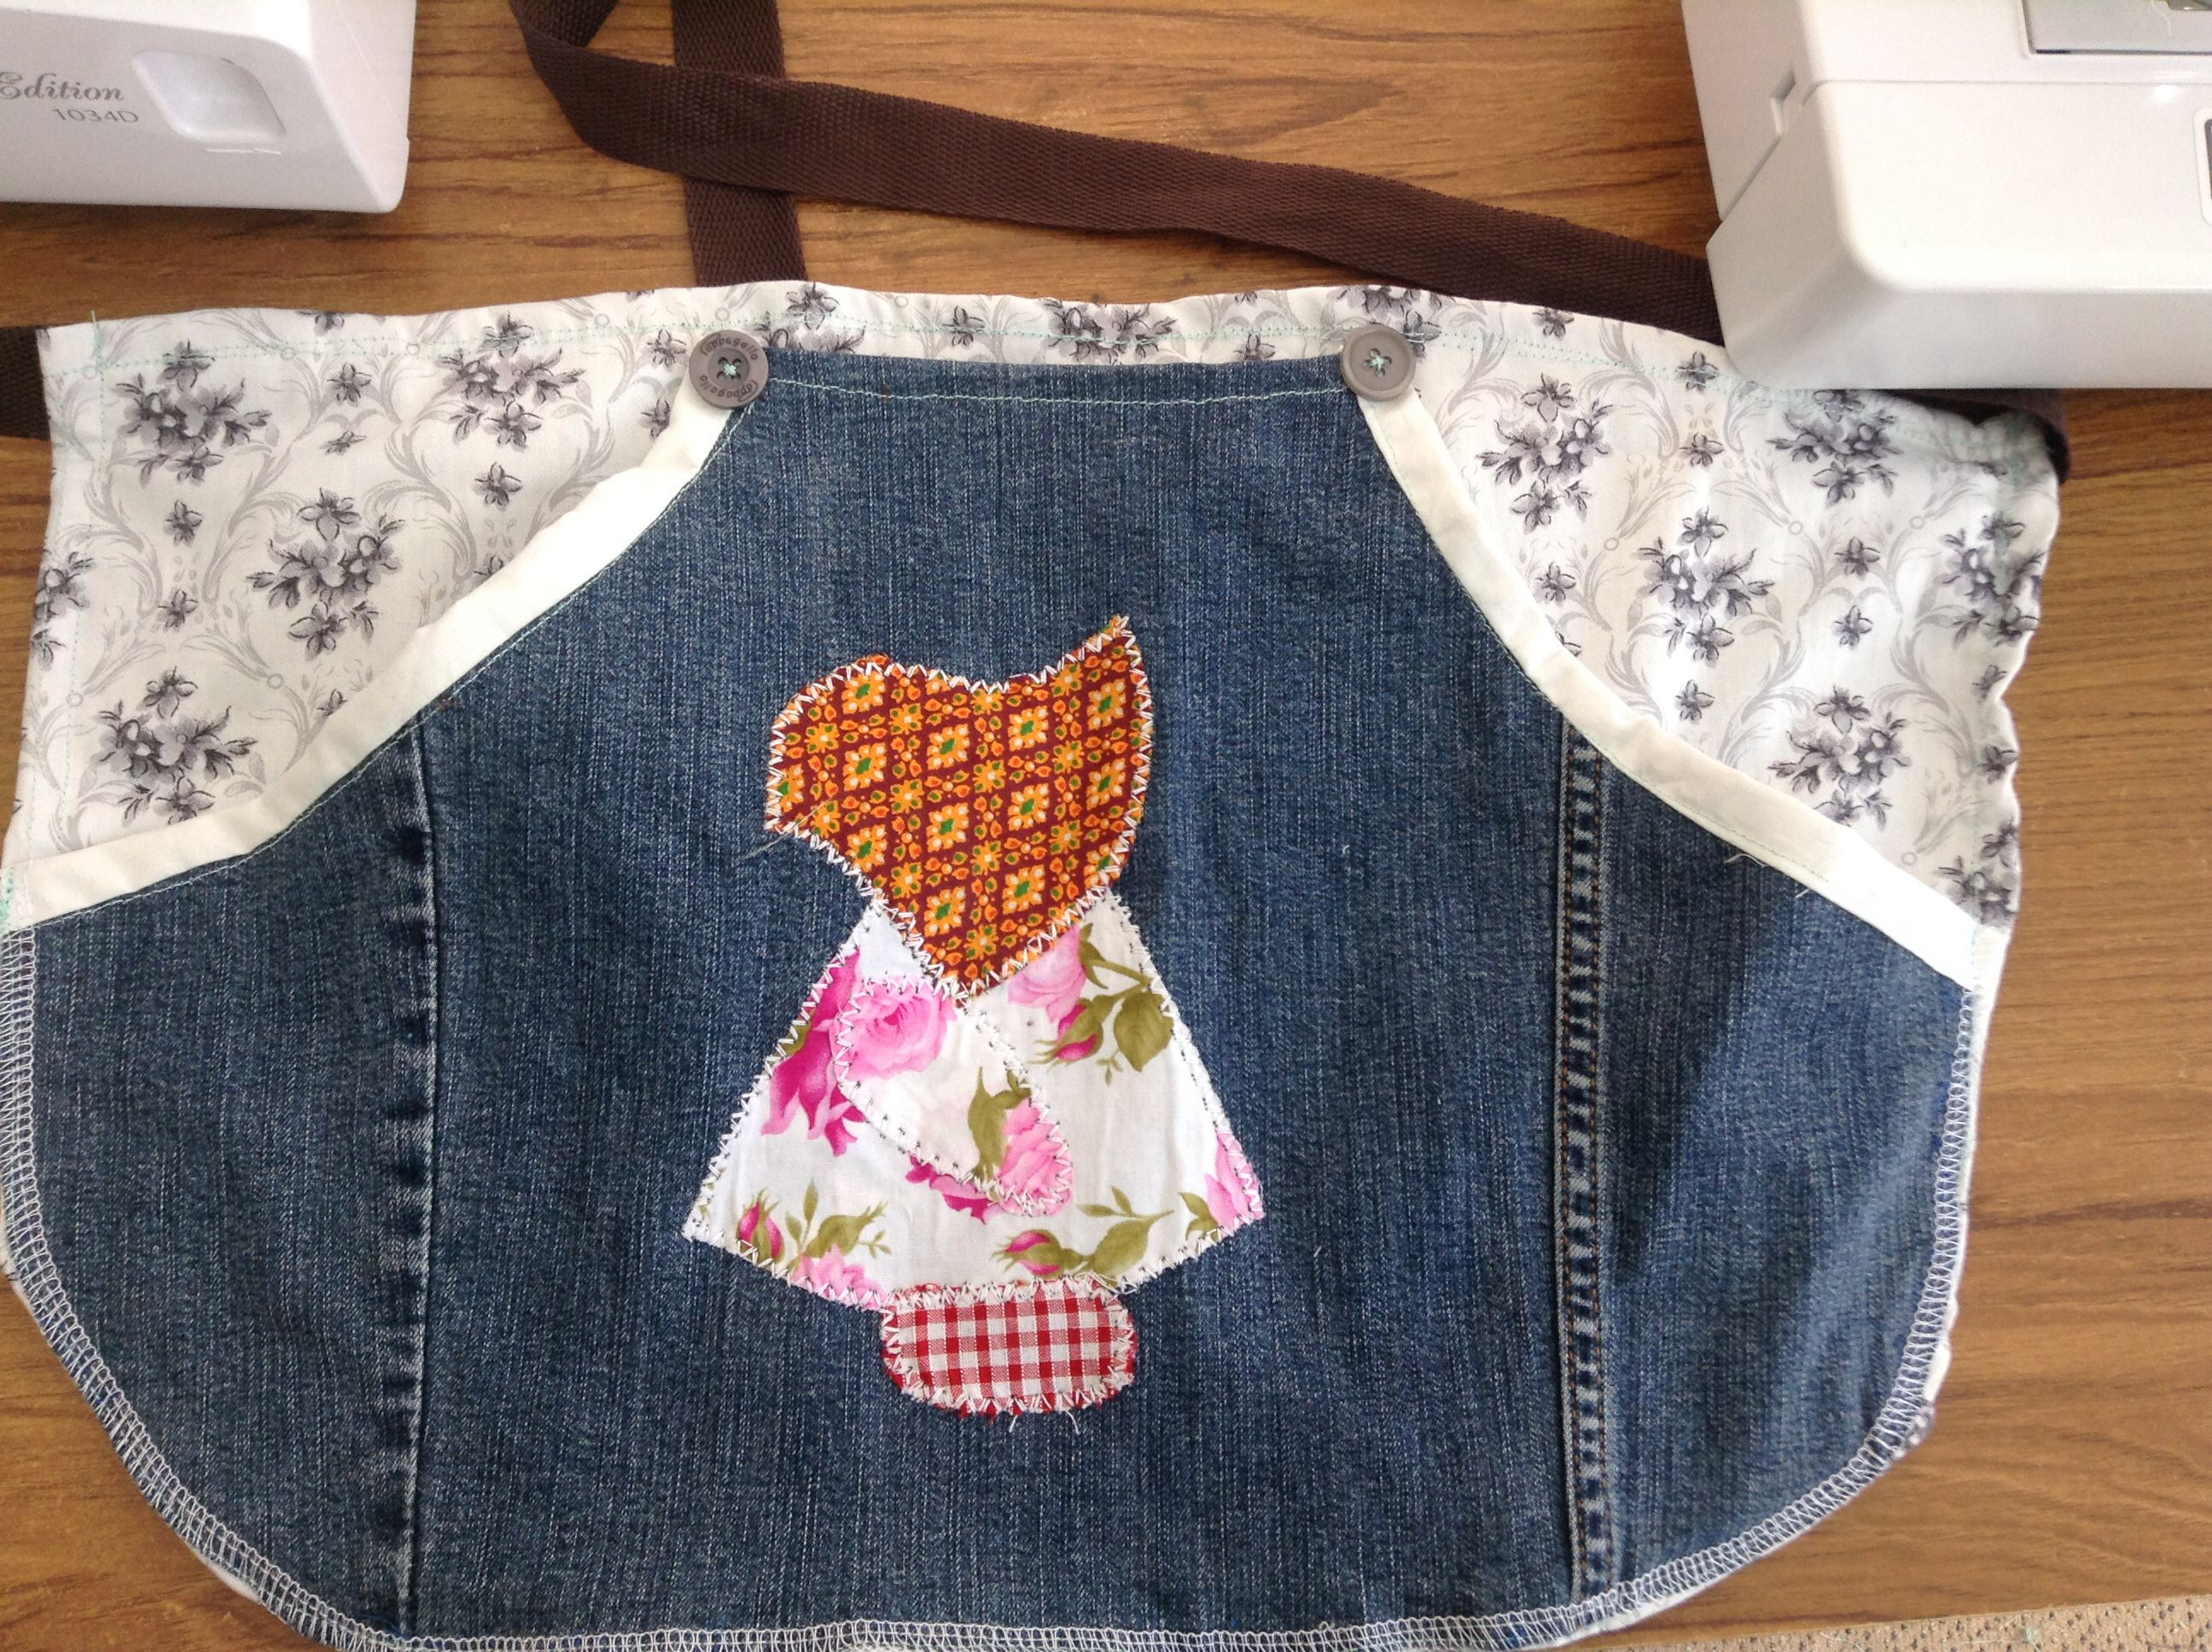 Sewing you old Peg Bag from your jeans